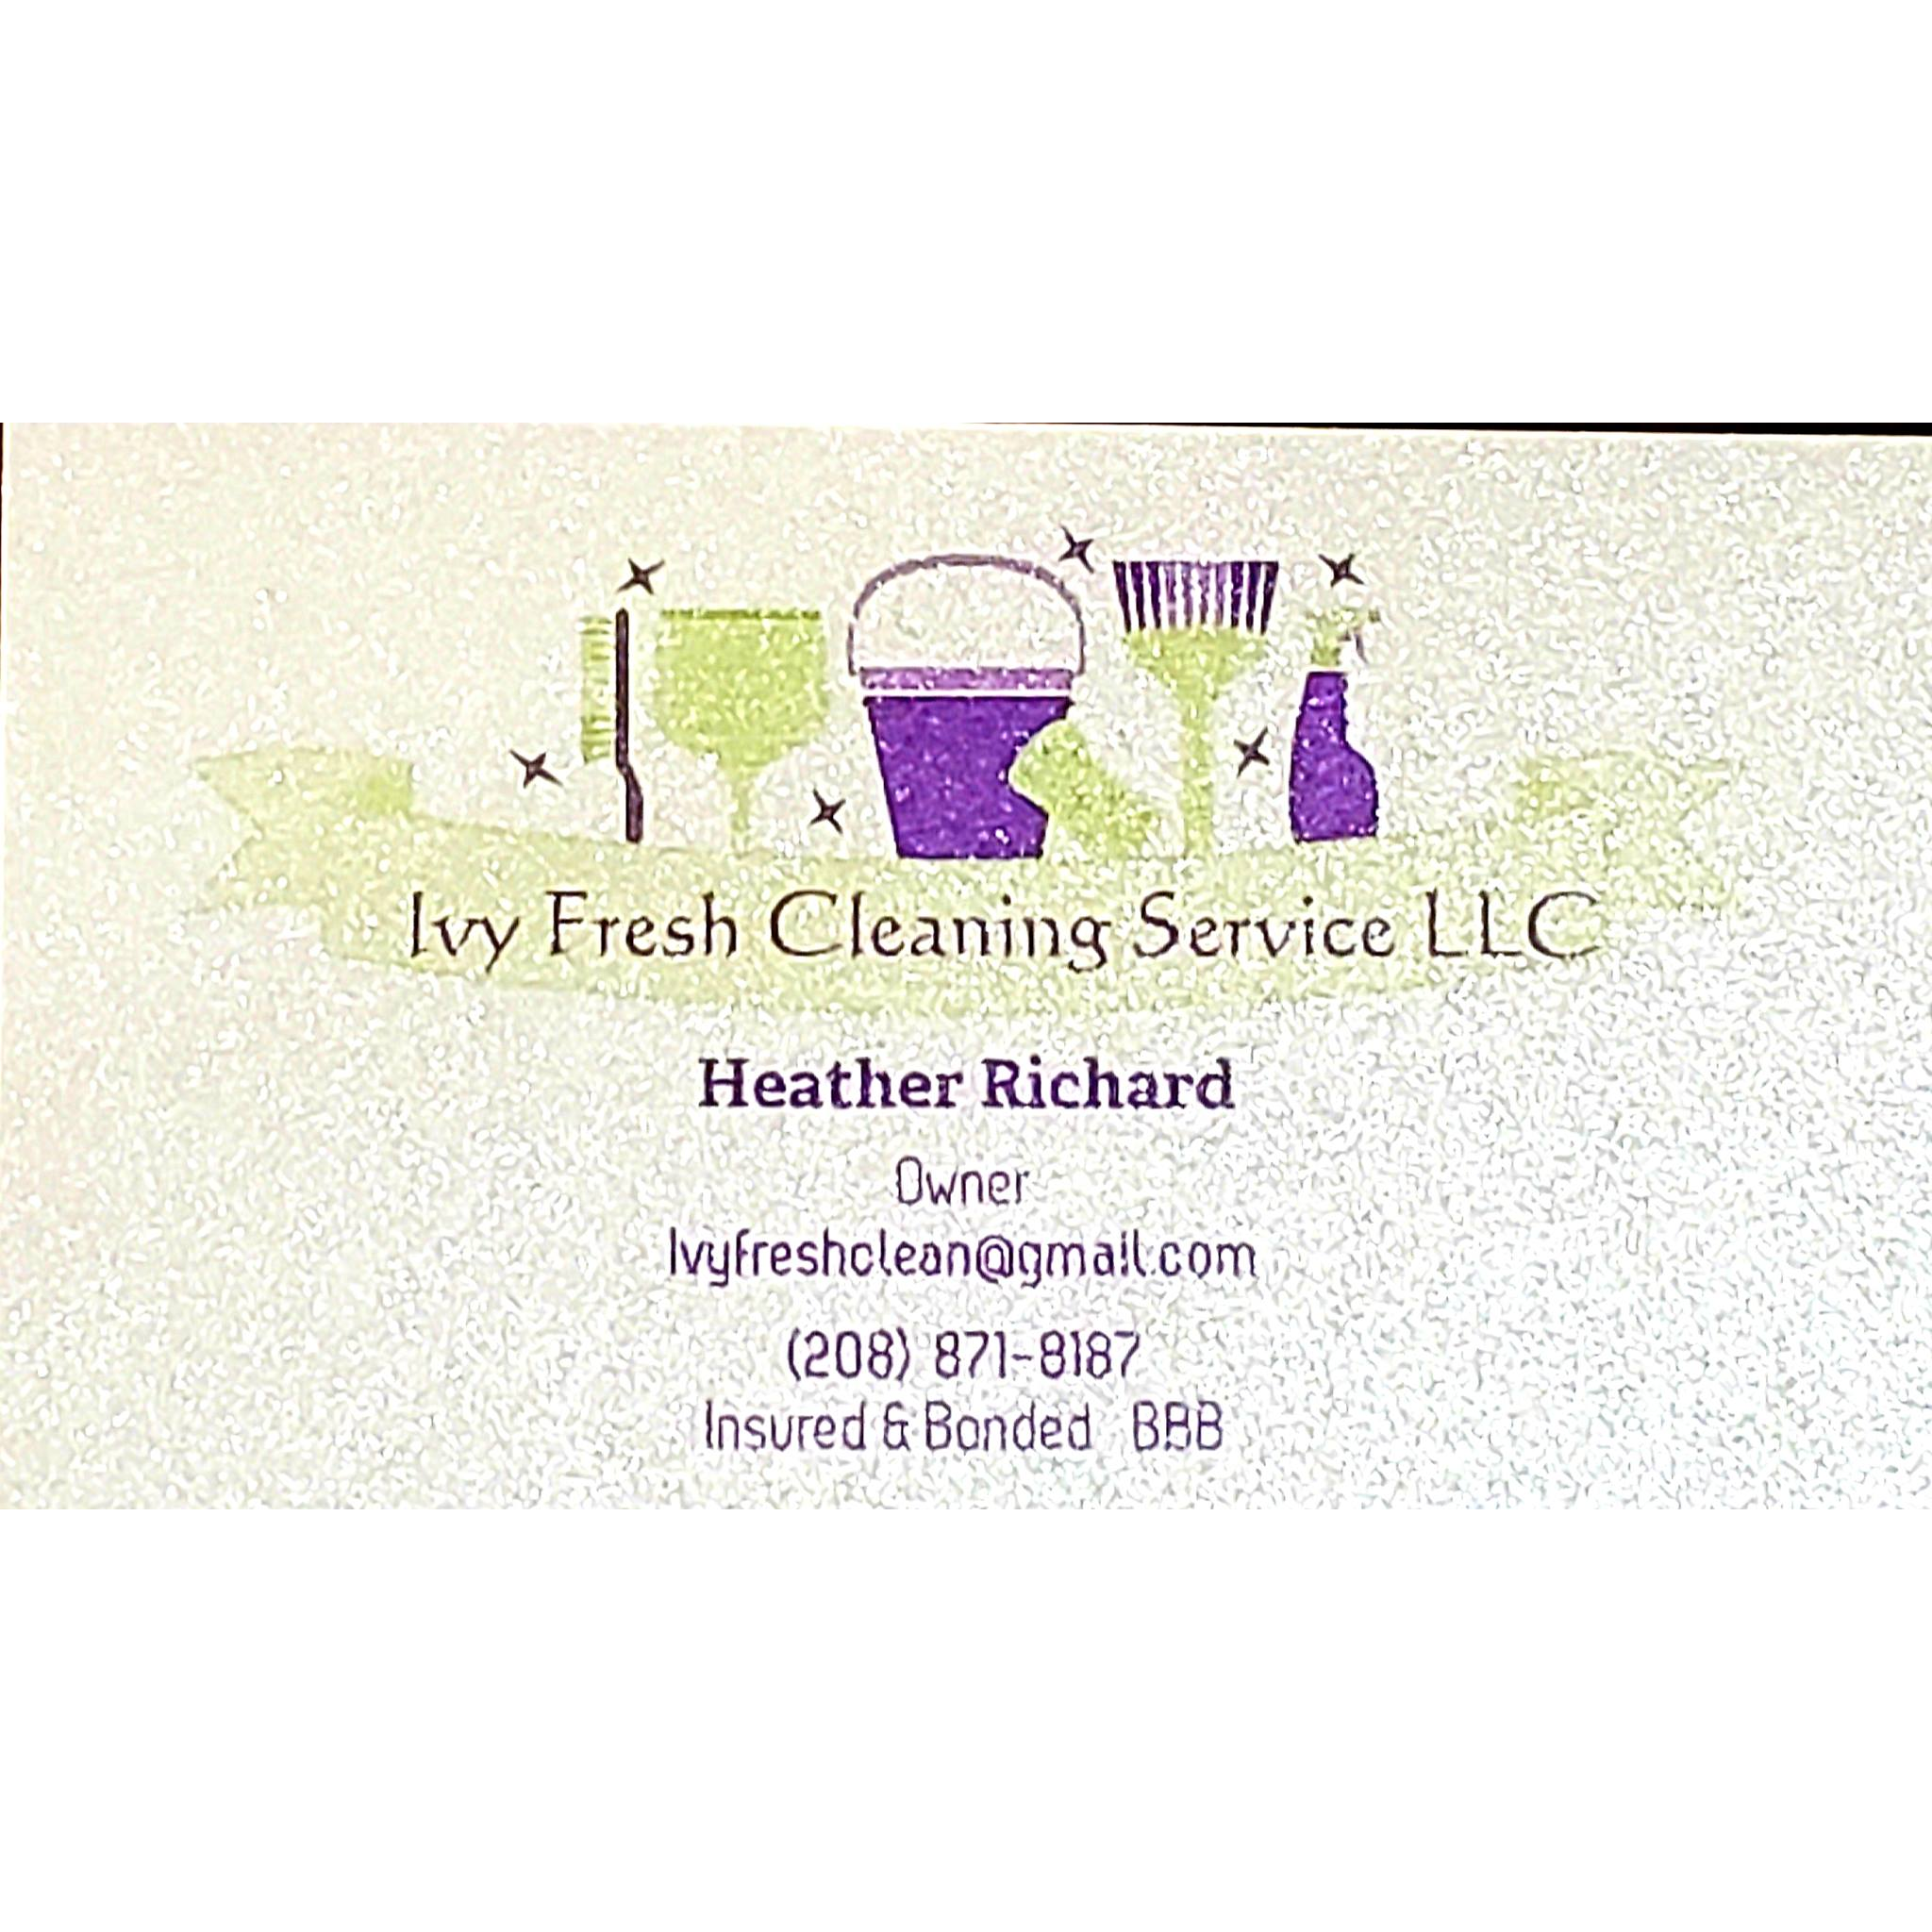 Ivy Fresh Cleaning Service